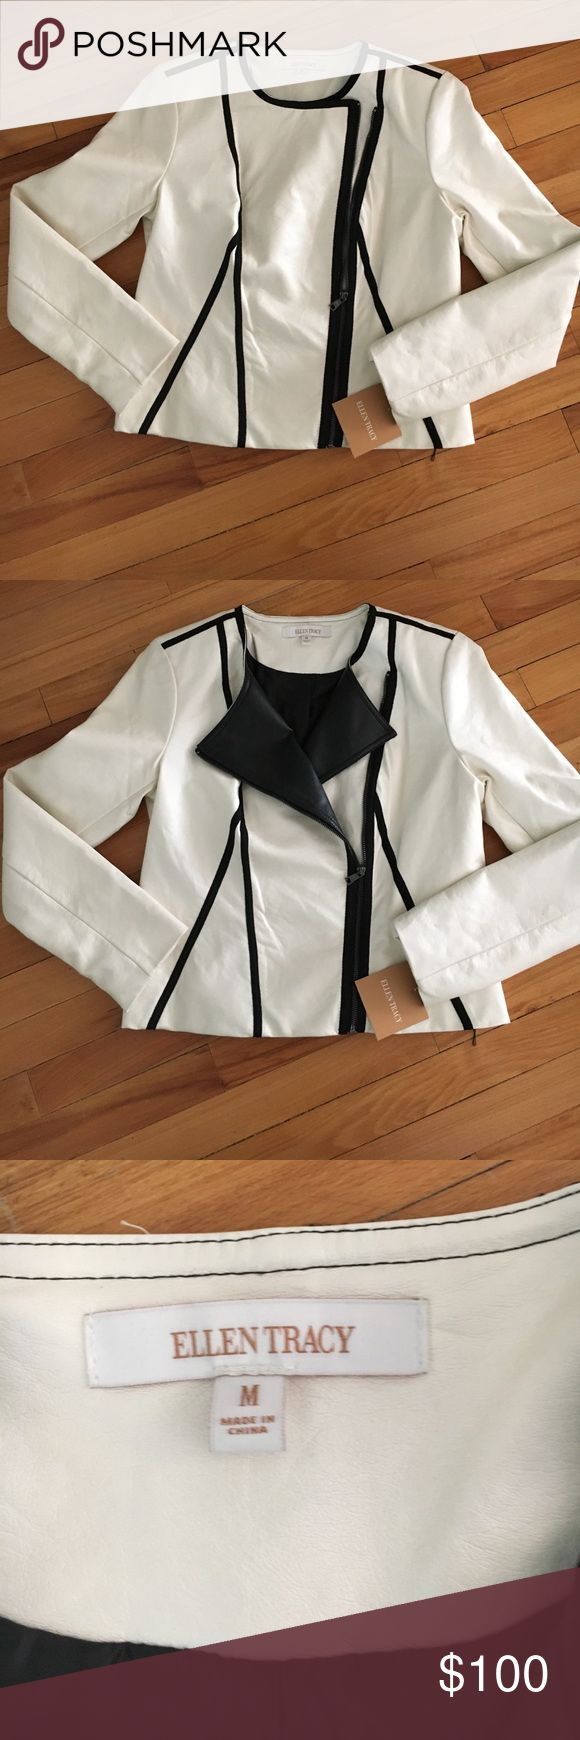 NWT Ellen Tracy Faux leather moto jacket Ellen Tracy Color Block Faux Leather Seamed Cream Jacket. Size medium. NWT Ellen Tracy Jackets & Coats